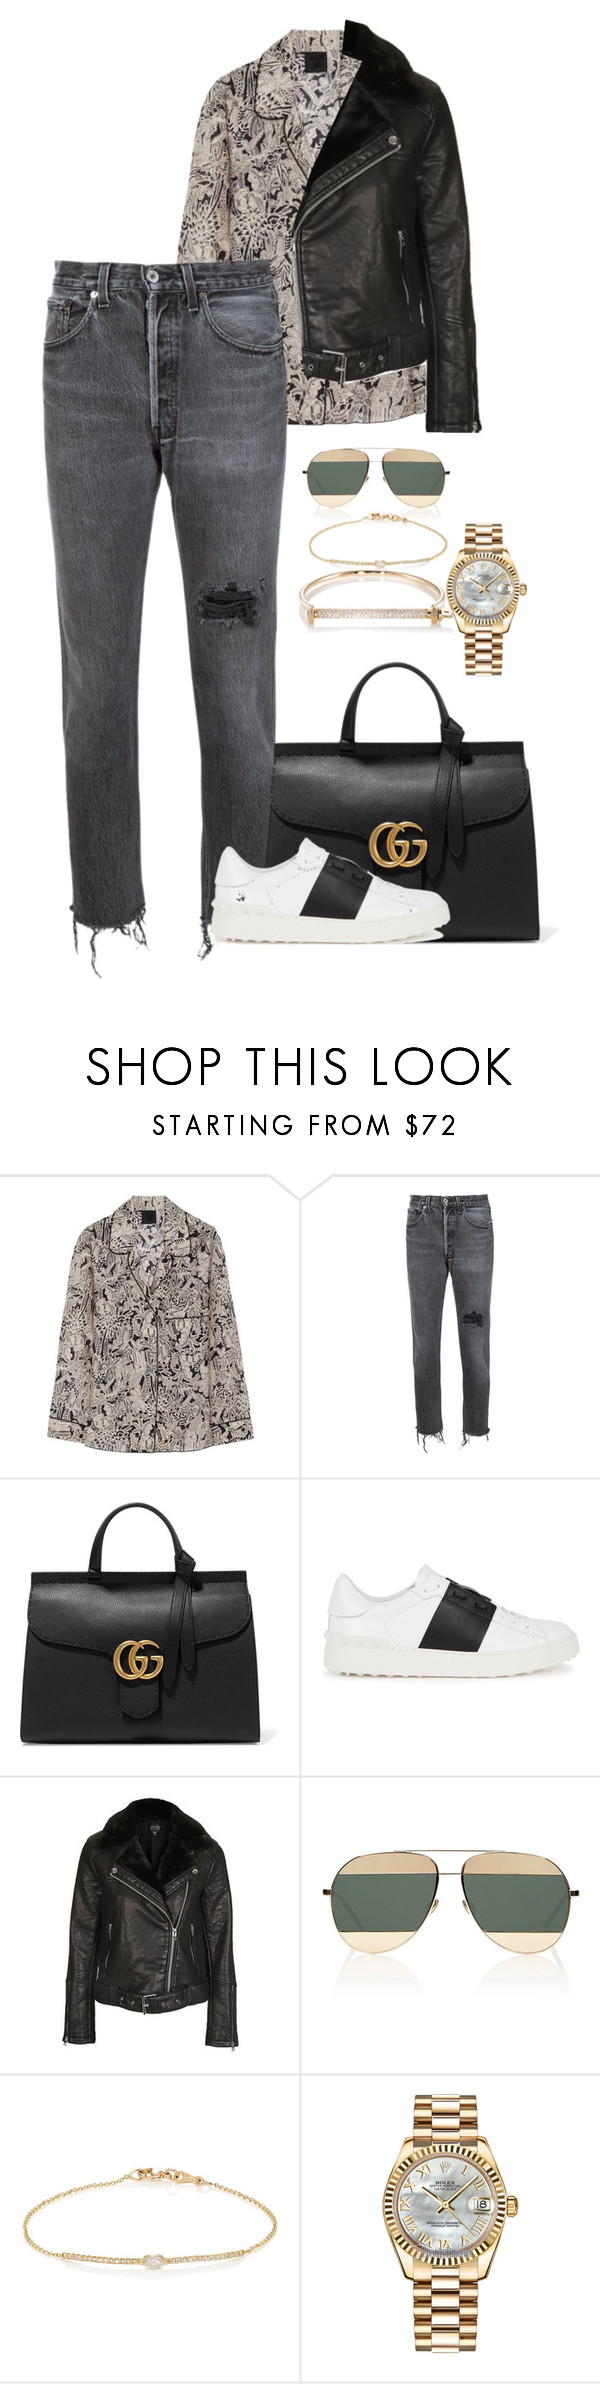 """Untitled #2617"" by moxfordf on Polyvore featuring moda, Anna Sui, RE/DONE, Gucci, Valentino, Topshop, Christian Dior, Tate, Rolex y MIANSAI"